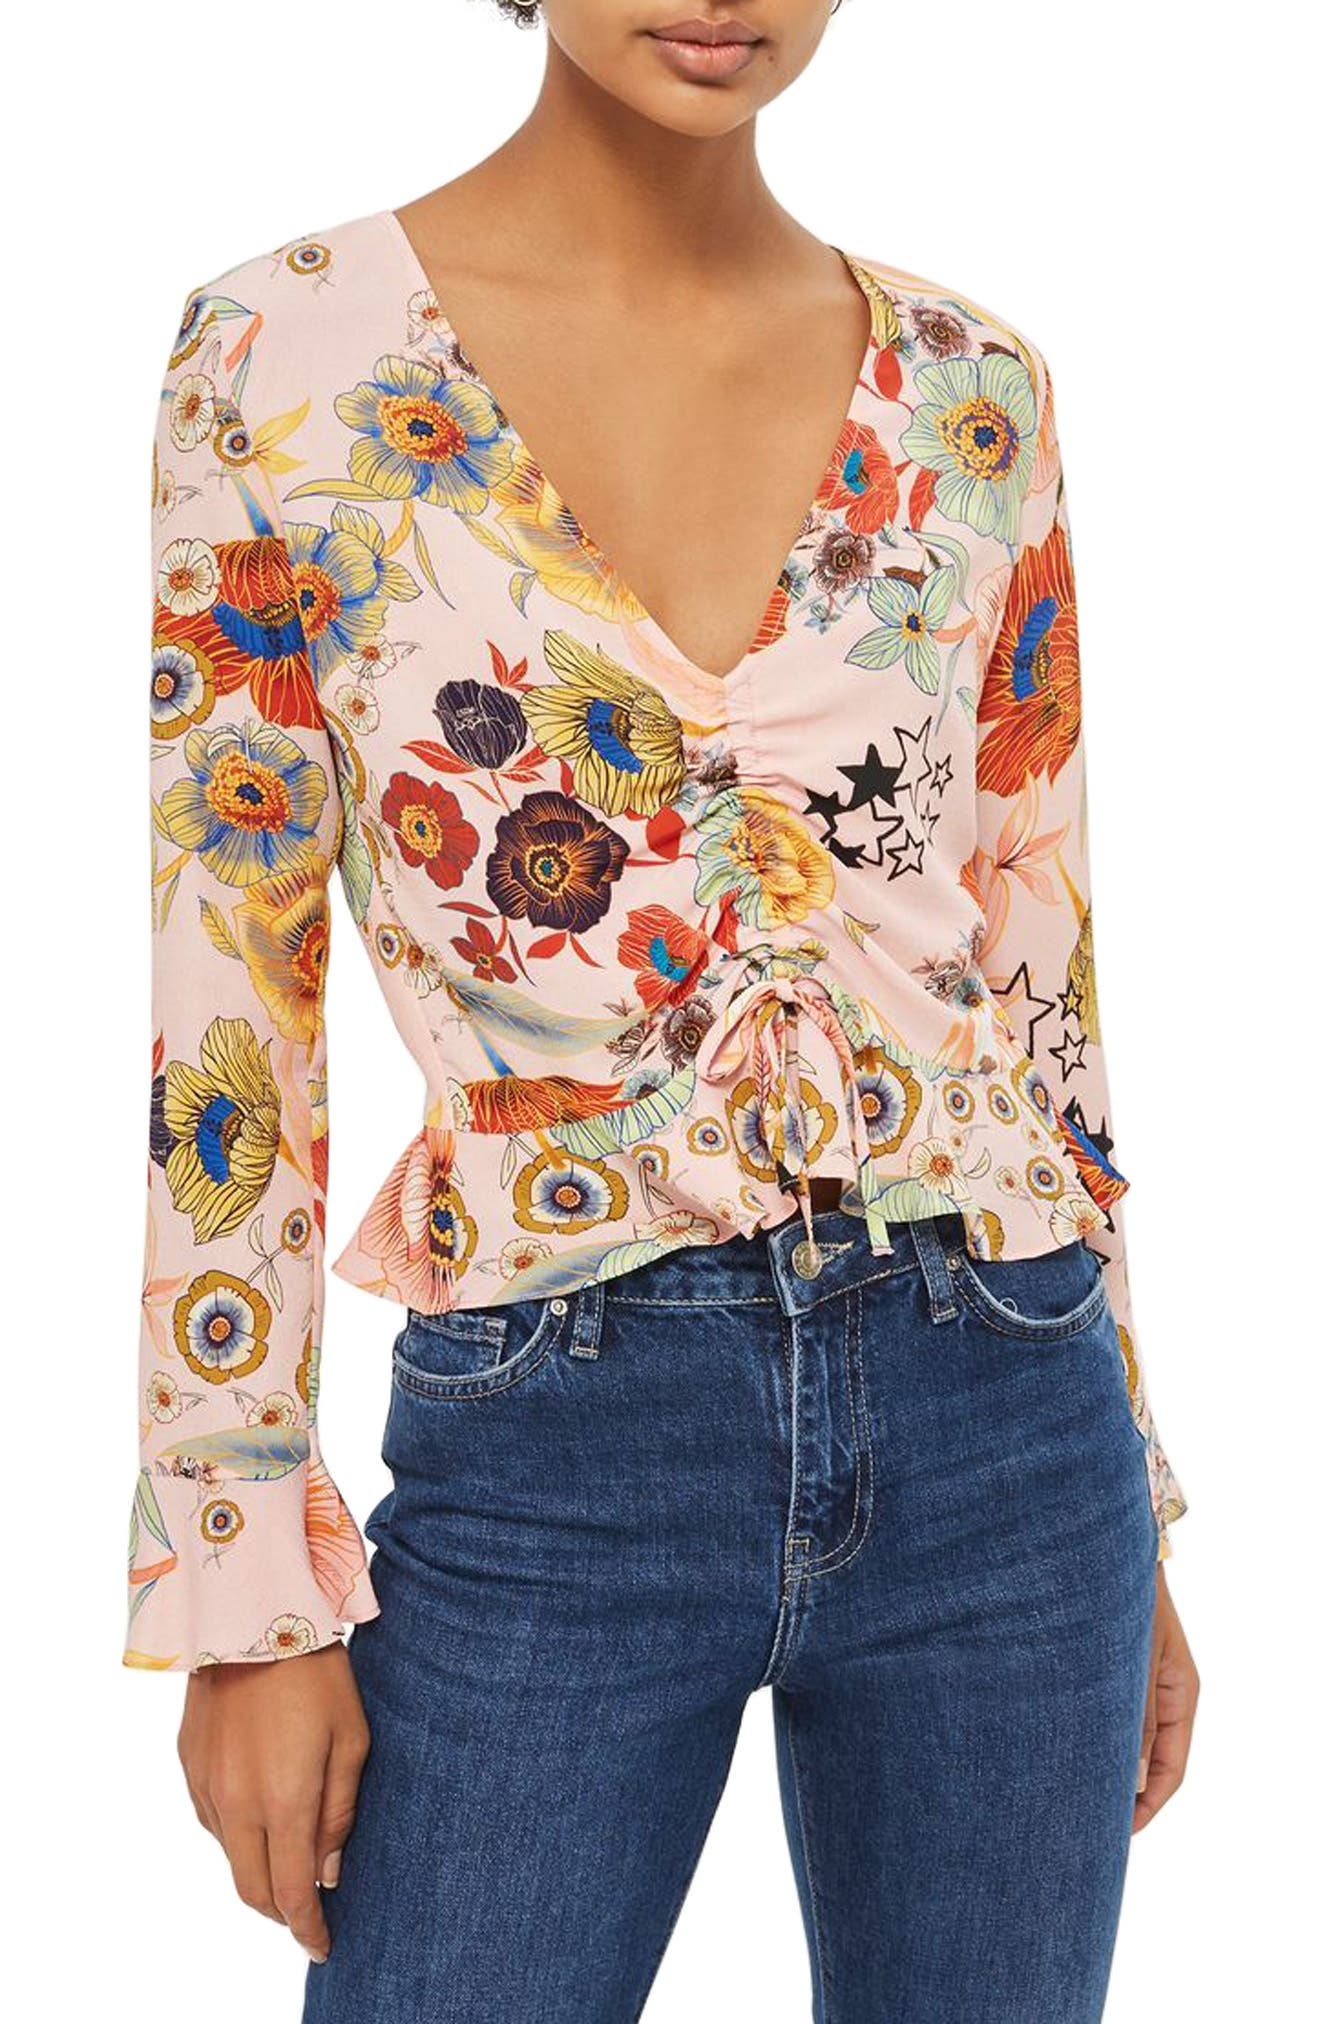 Main Image - Topshop Star & Floral Print Ruched Blouse